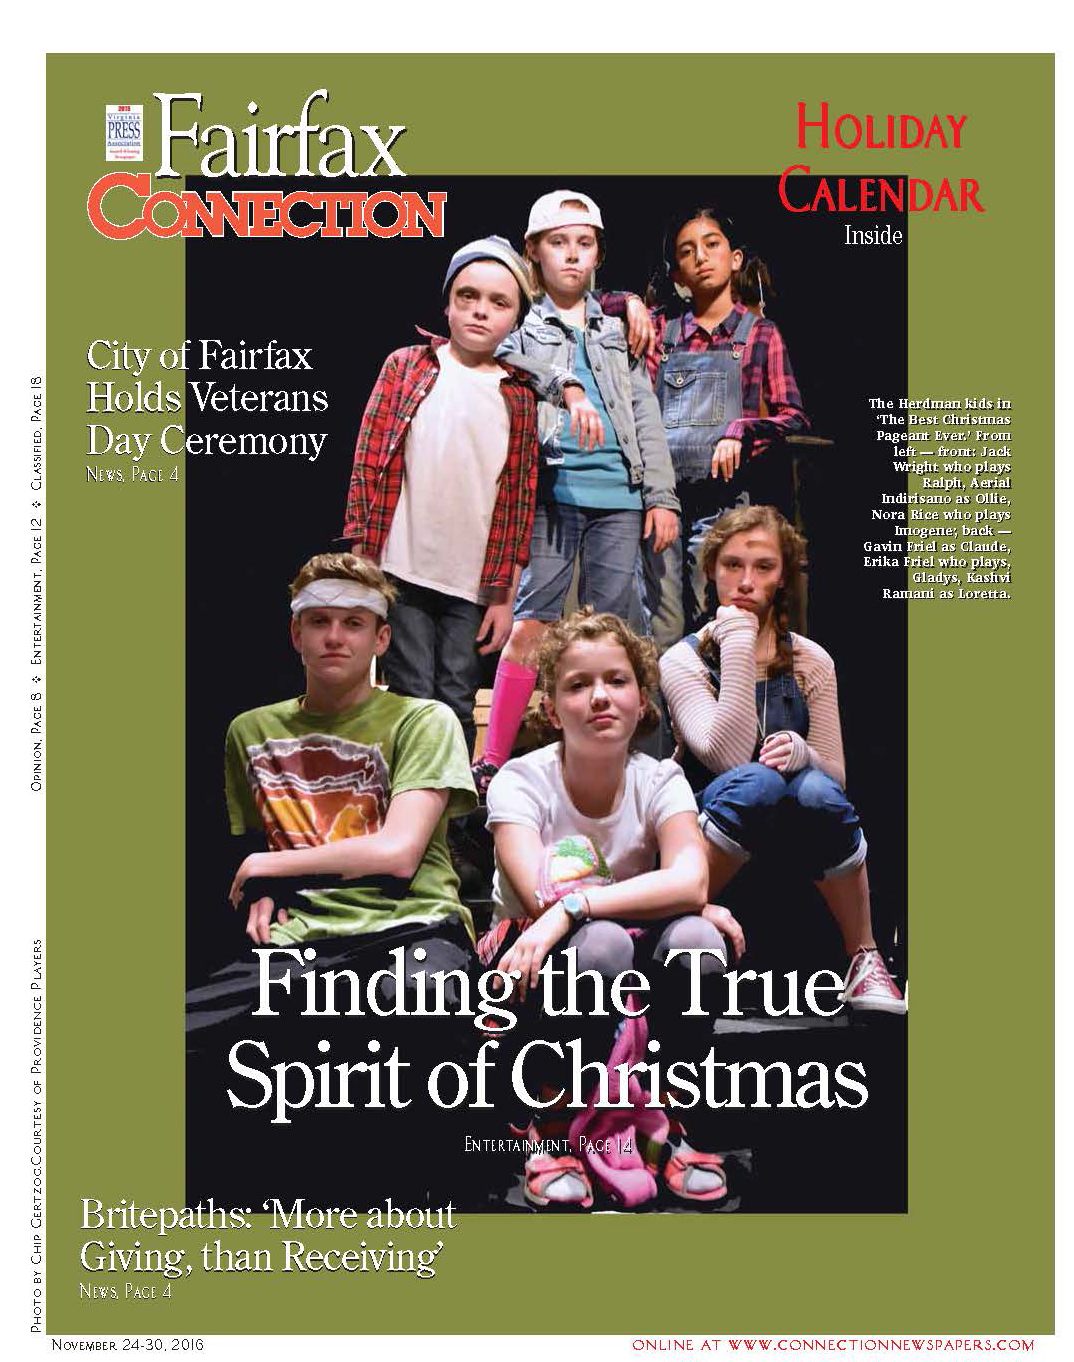 fairfax-connection-11-23-16-cover